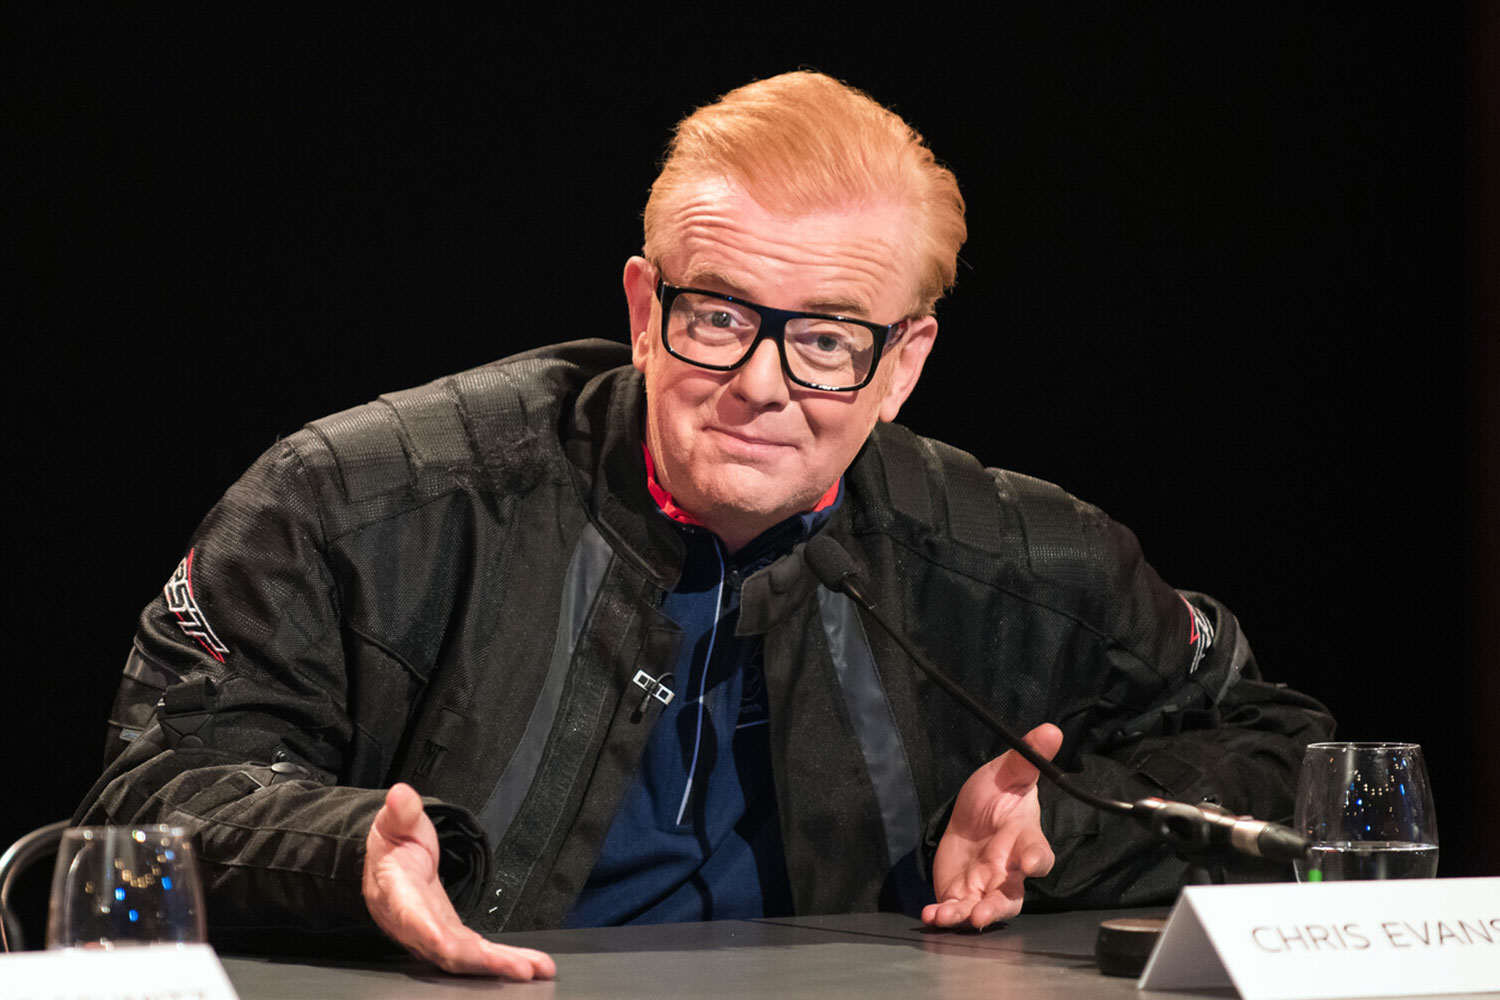 chris evans top gear Lethal Bizzle Wants Top Gear Job Because I Have More Bants